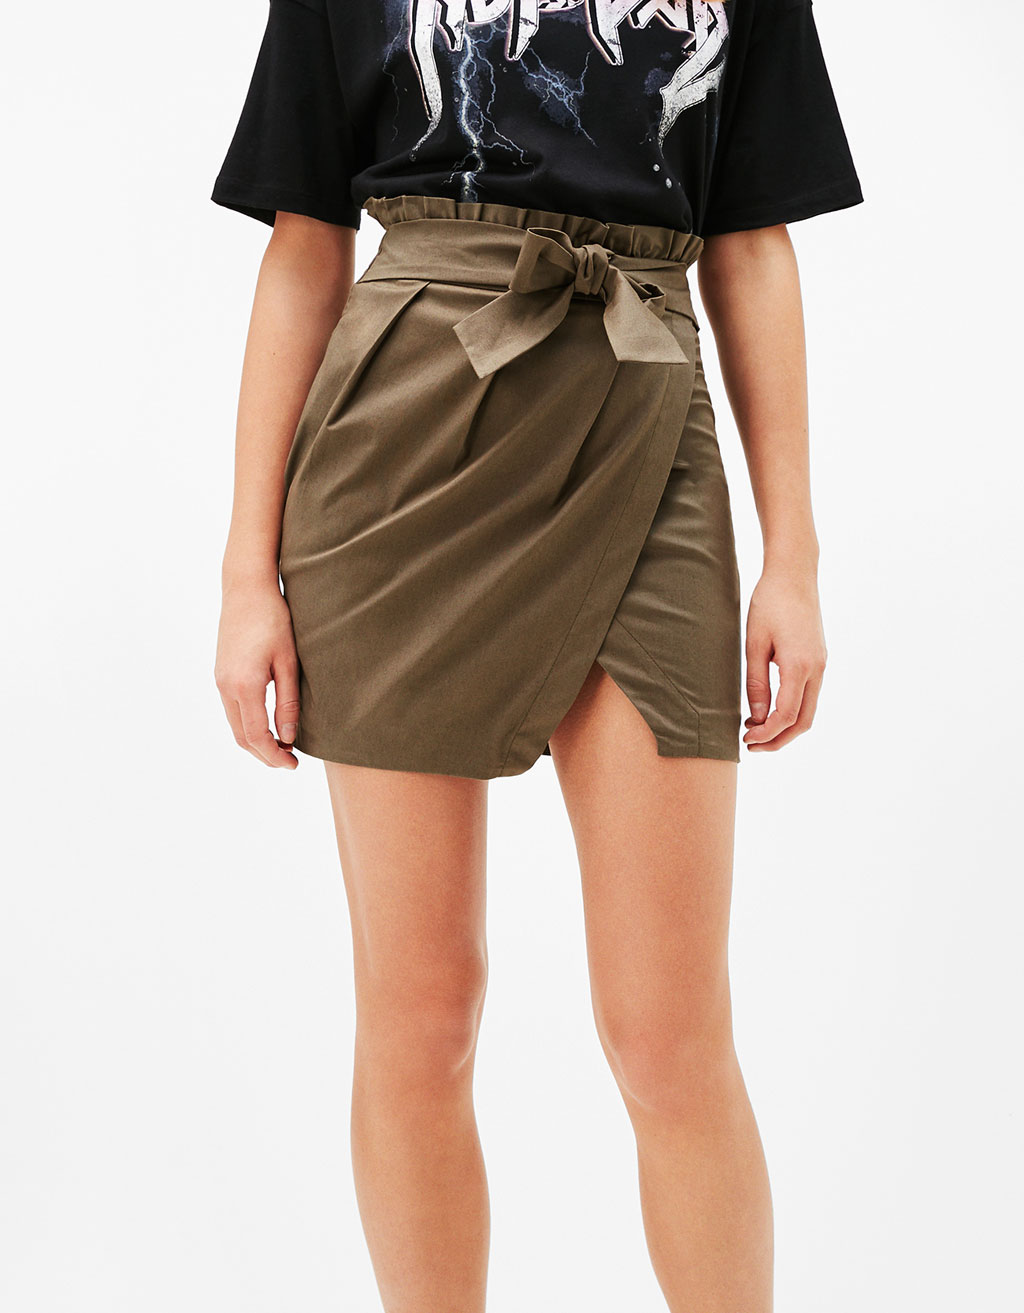 Short trench-style skirt with bow